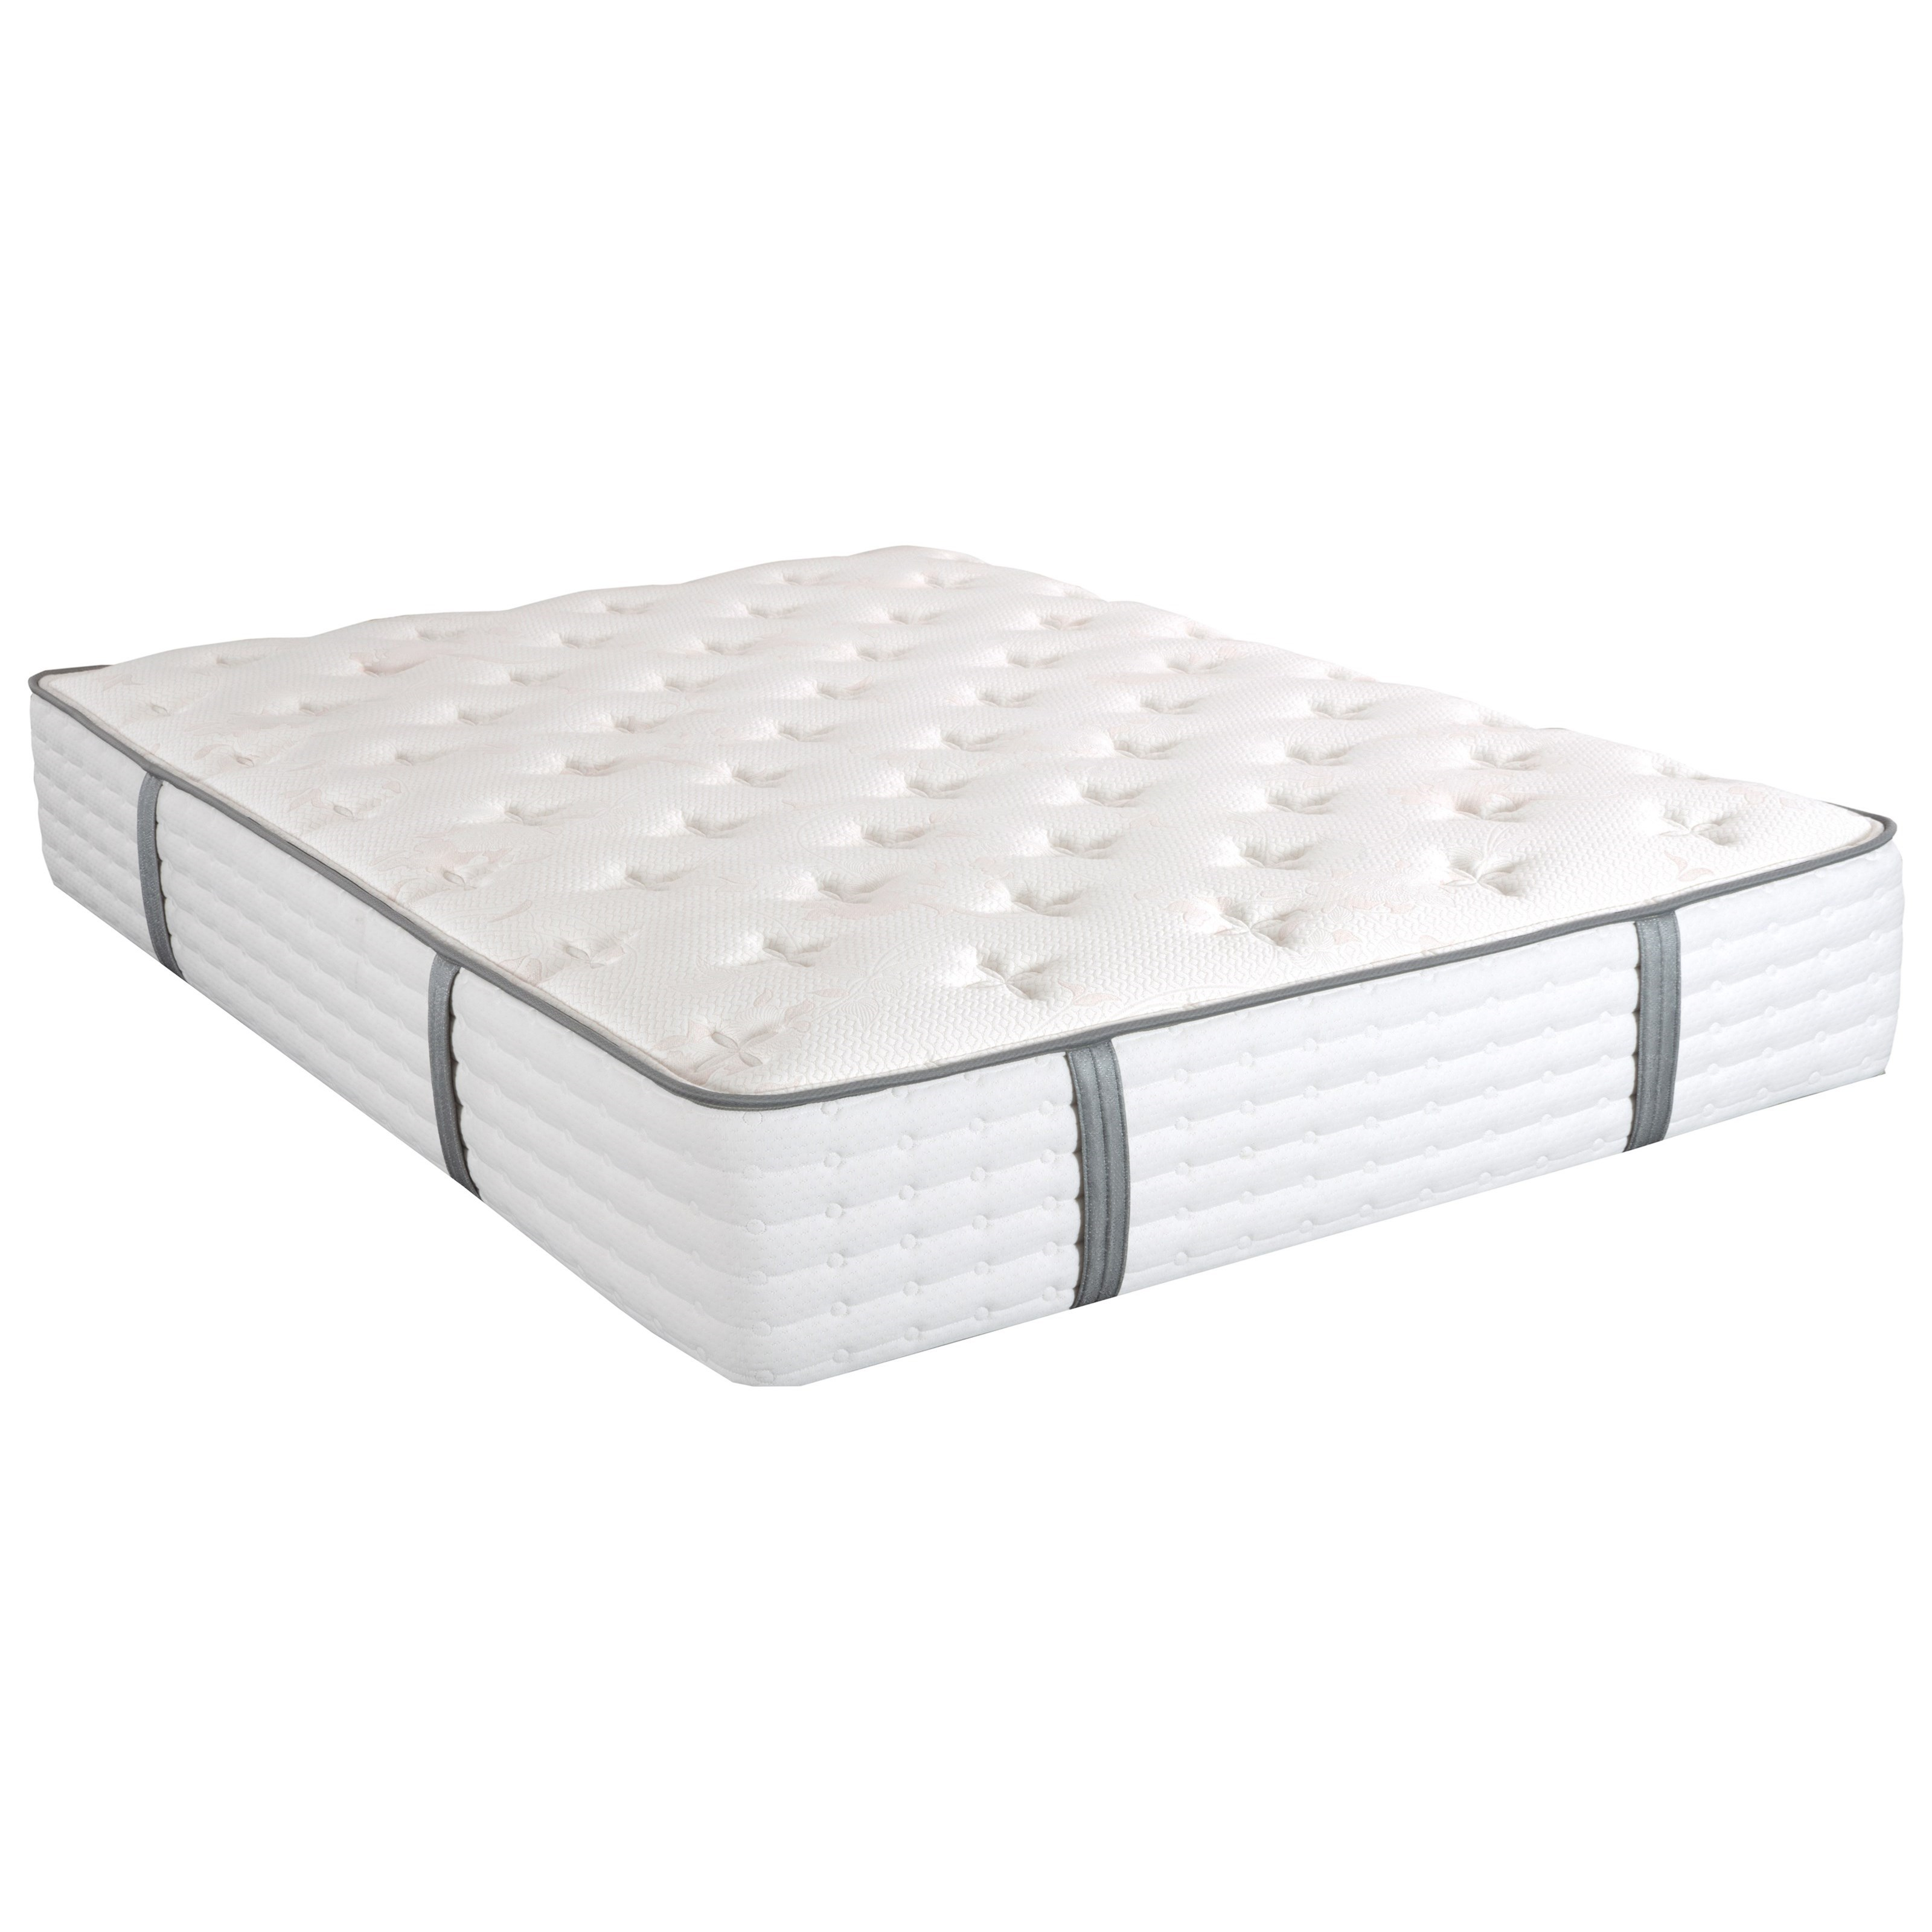 Laura Ashley Amelie Extra Firm Queen Extra Firm Pocketed Coil Mattress by King Koil at Nassau Furniture and Mattress